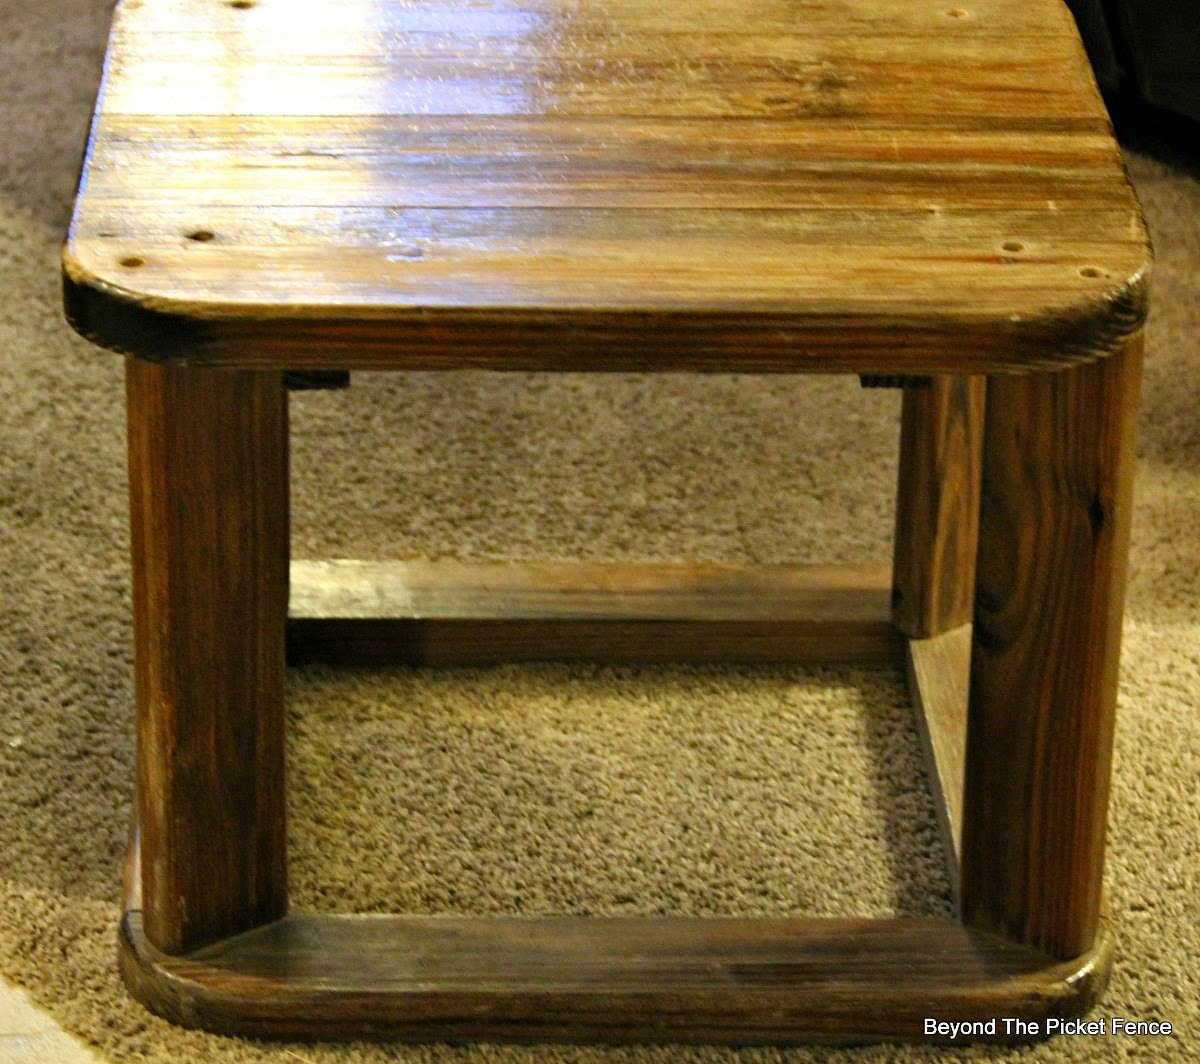 end table, repurposed, trash to treasure, wood table, paint, Beyond The Picket Fence, http://bec4-beyondthepicketfence.blogspot.com/2015/02/end-table-or-what-to-do-with-ugly-table.html